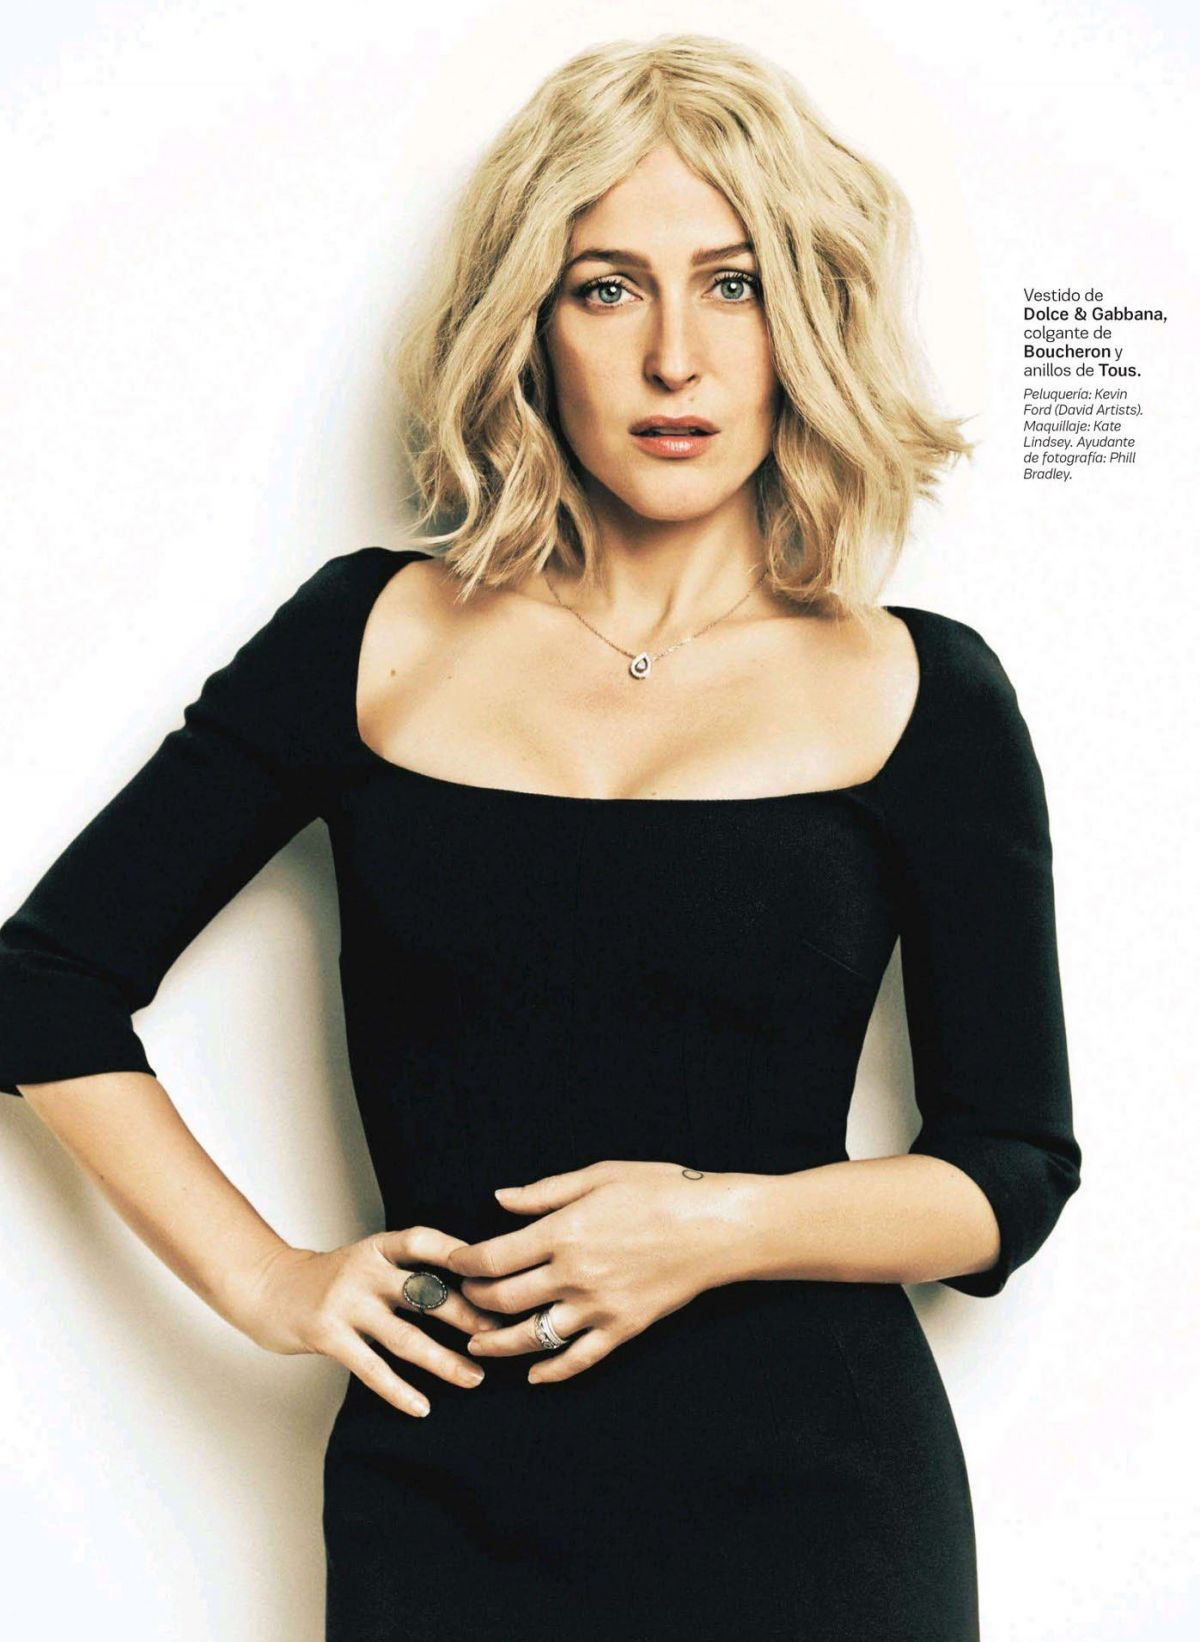 GILLIAN ANDERSON in S Moda Magazine, Spain July 2014 Issue